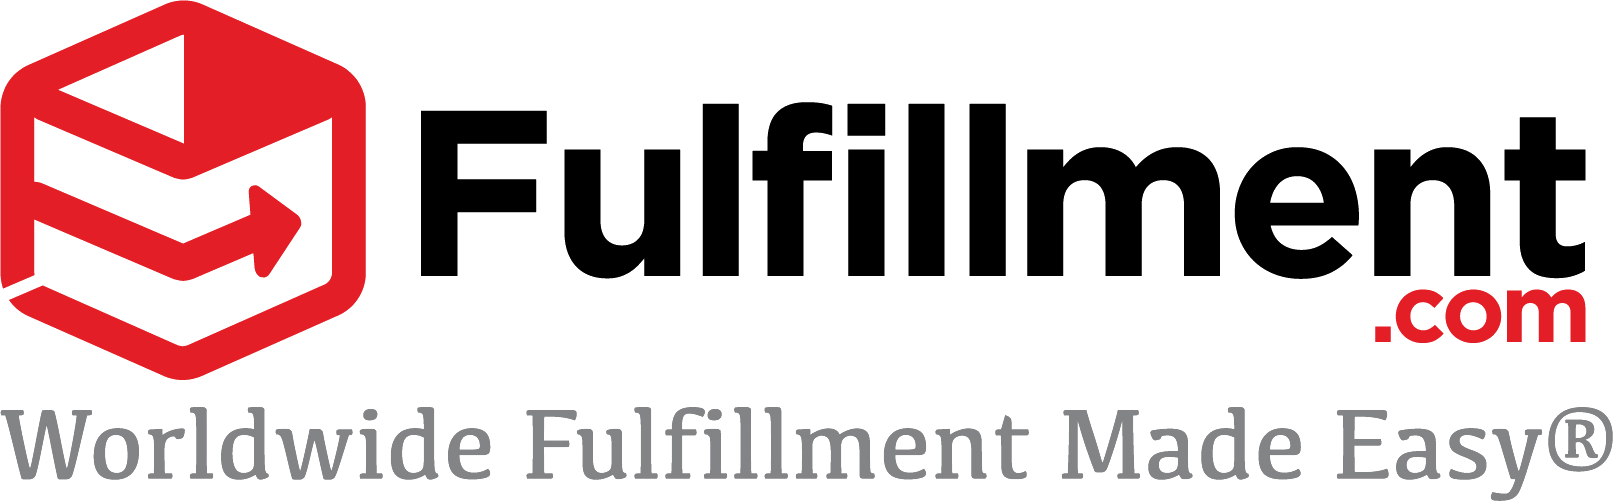 Fulfillment.com